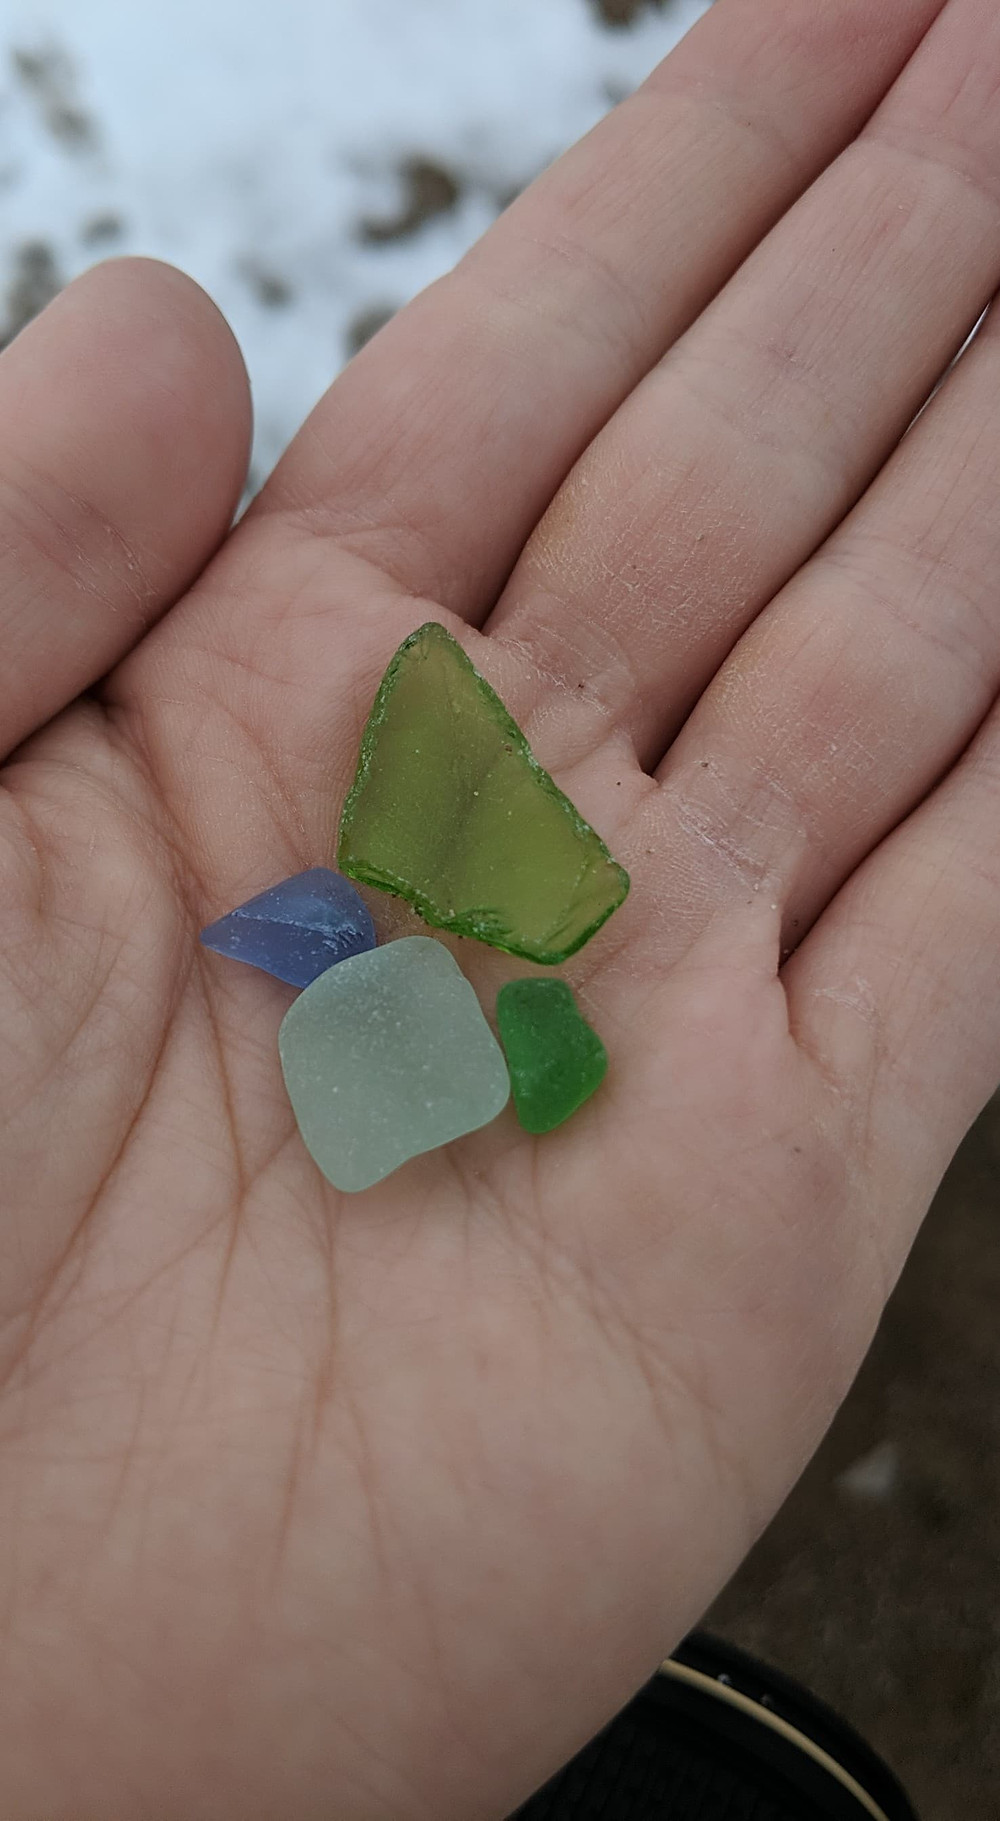 A hand holding four pieces of beach glass. One is dark blue, one is aqua, and two are green.